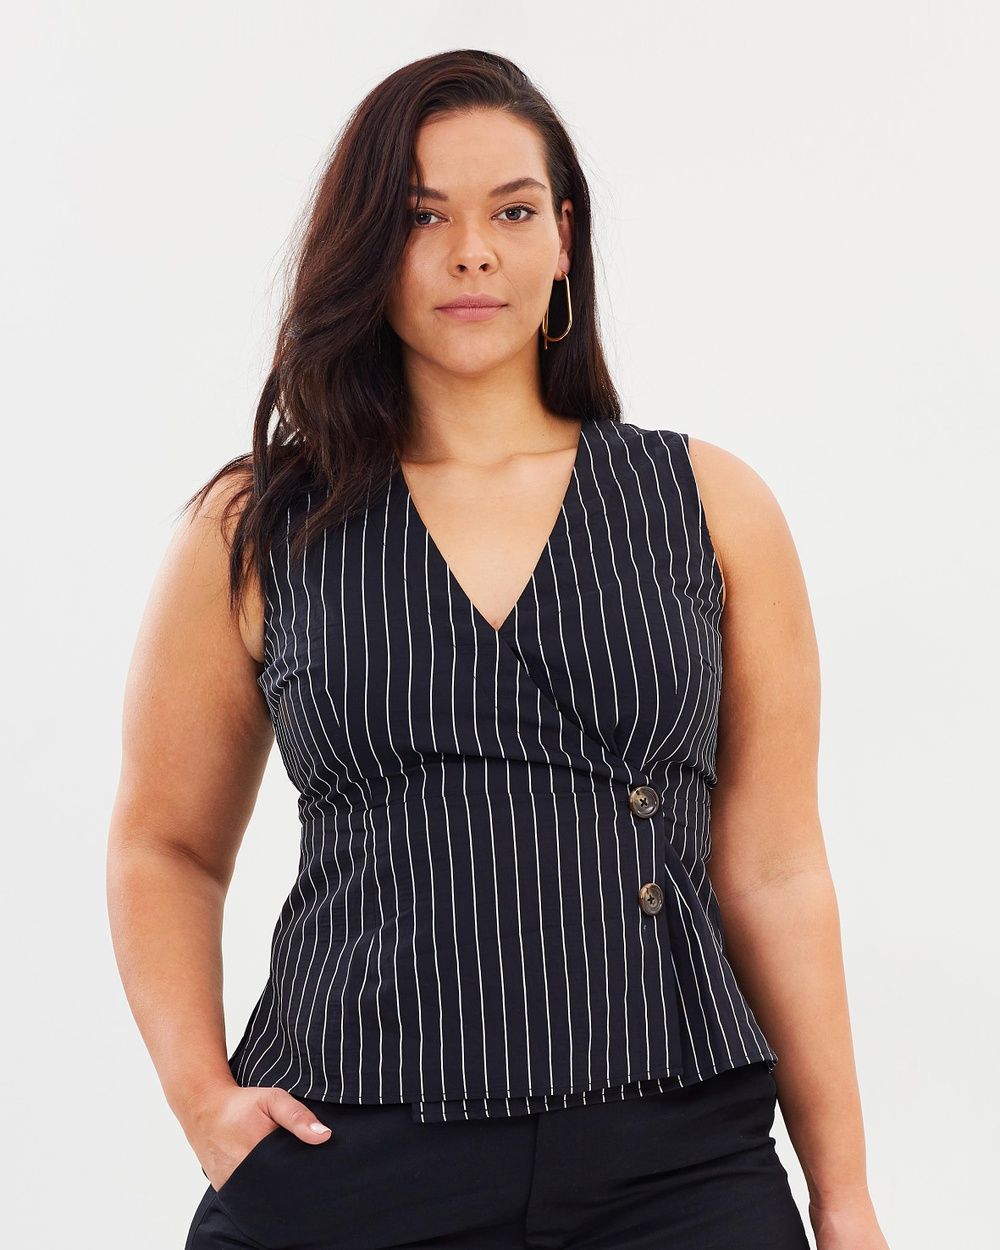 Atmos & Here Curvy ICONIC EXCLUSIVE Ali Asymmetrical Button Front Top Tops Black & White Stripes ICONIC EXCLUSIVE Ali Asymmetrical Button Front Top